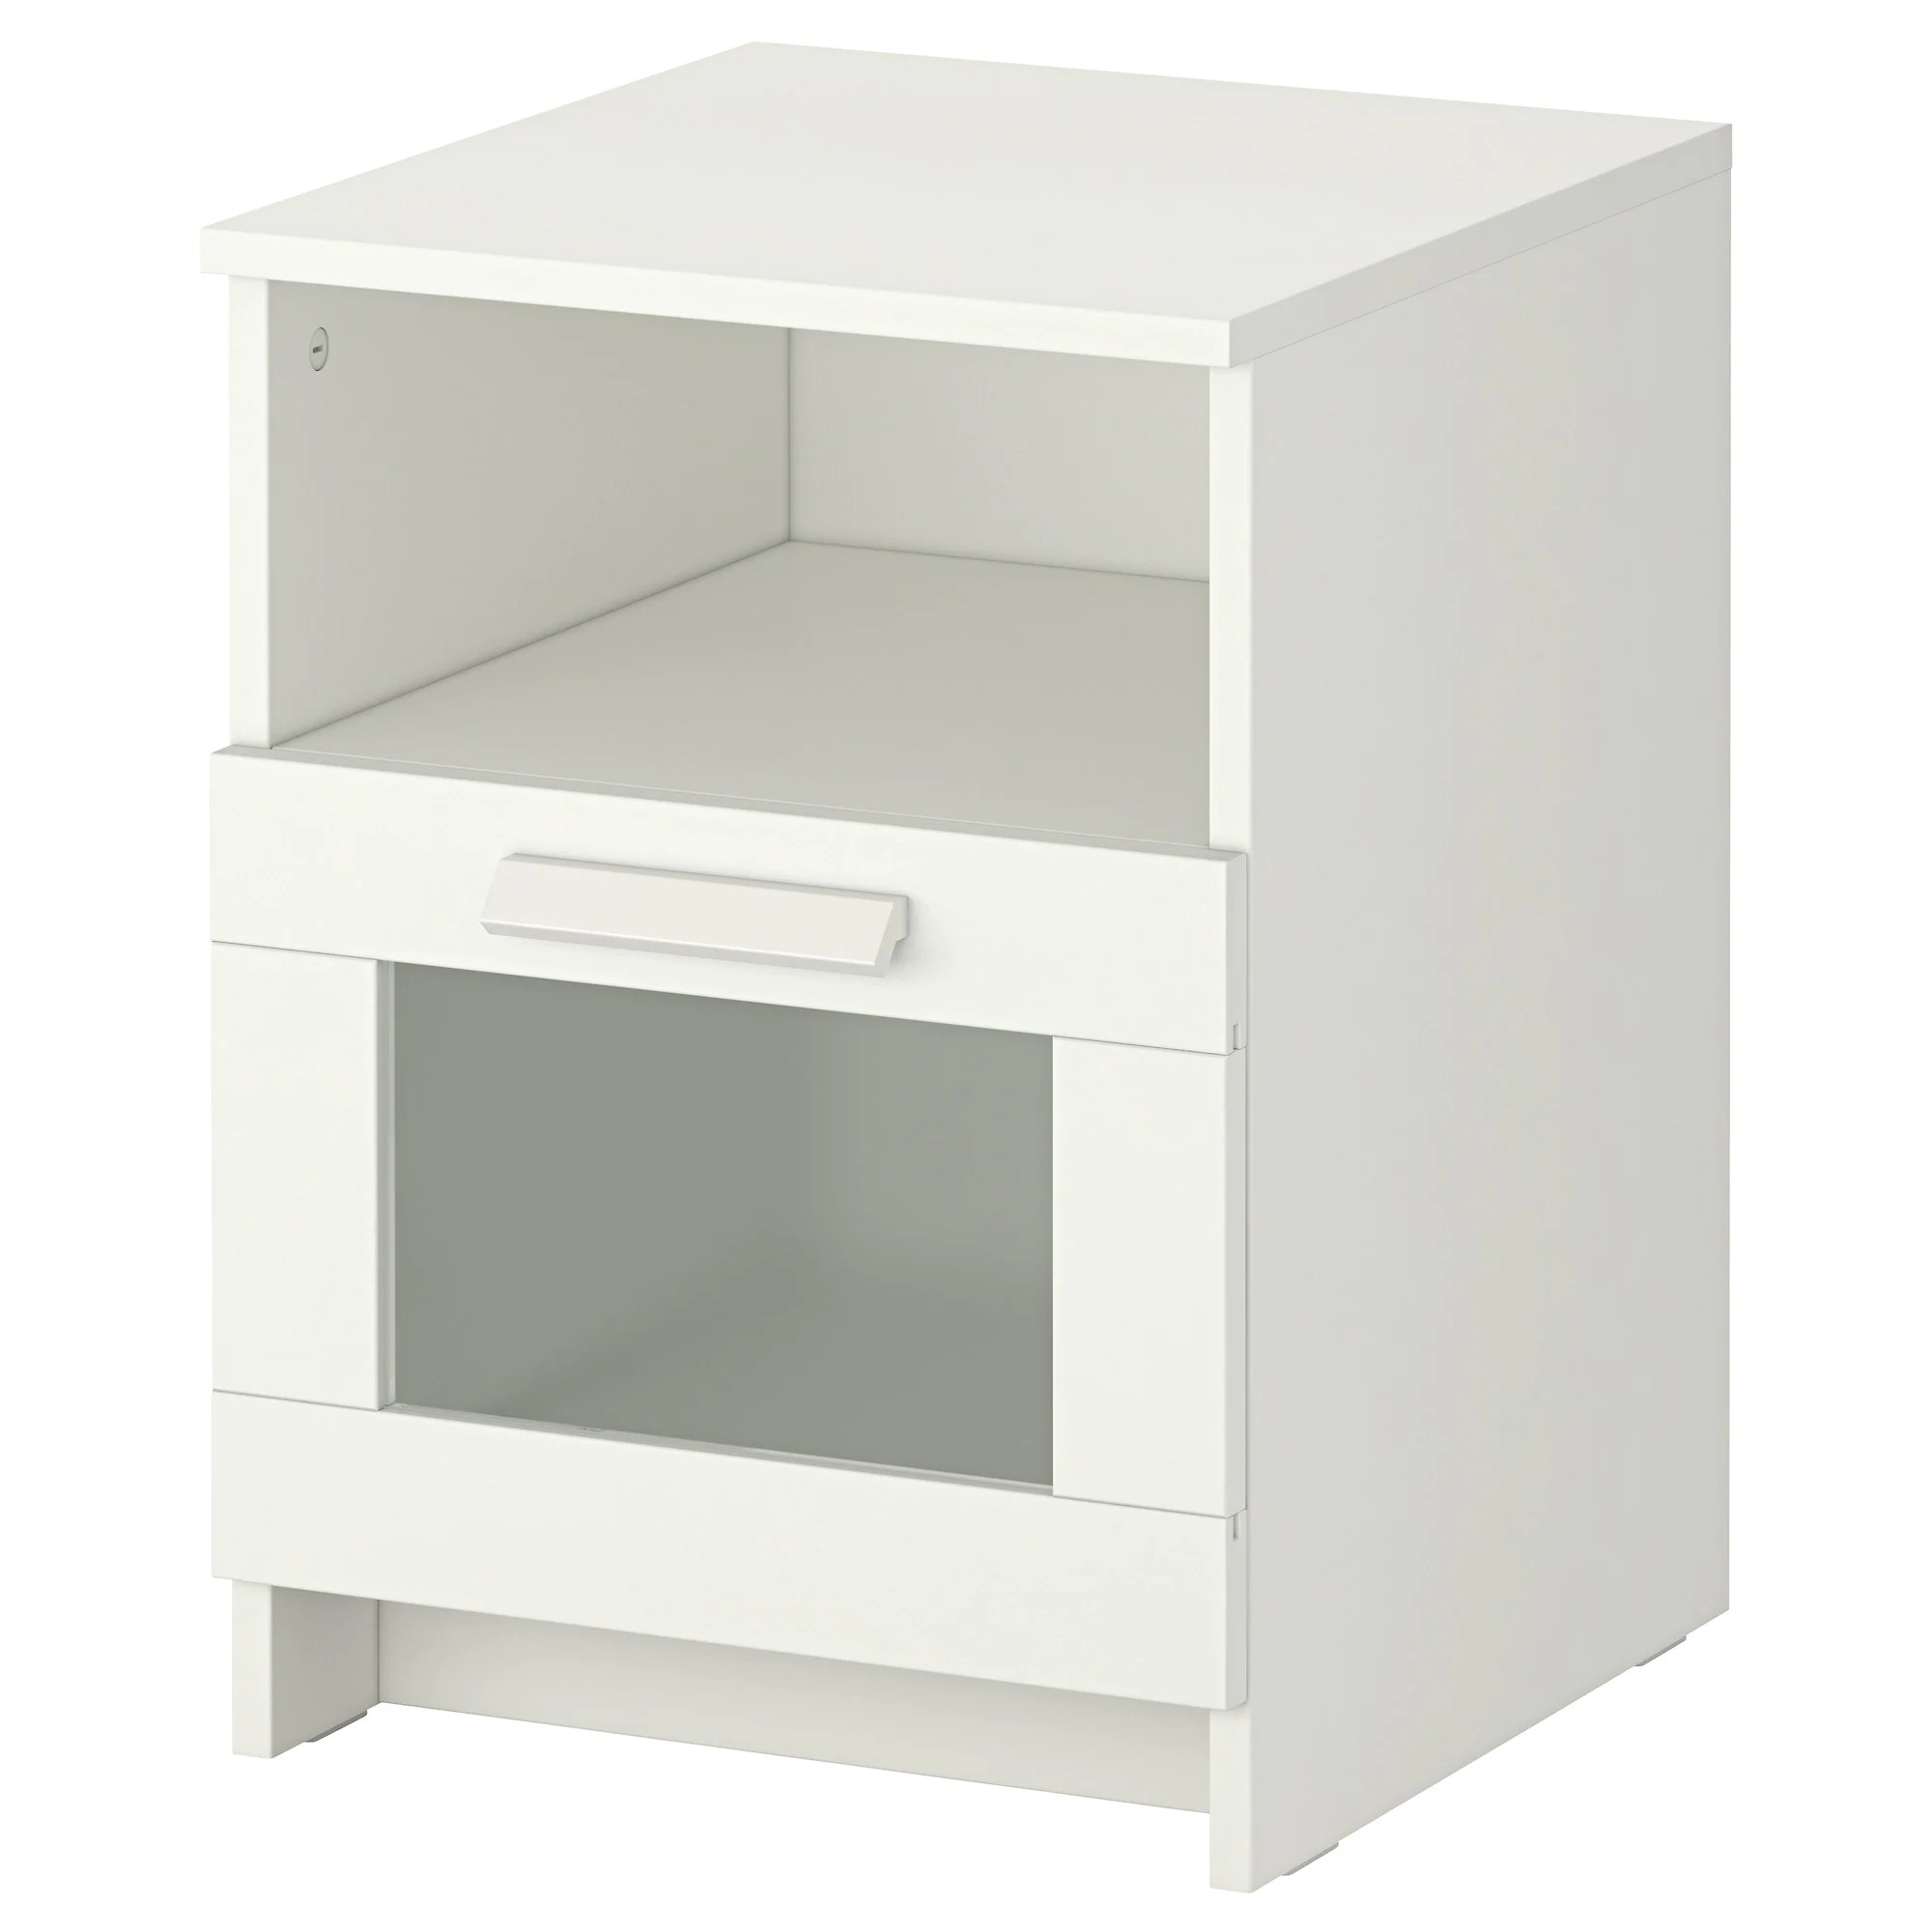 Side Table In Bedroom Bedroom Side Tables Nightstand Night Stand Bedside Table Bed Side